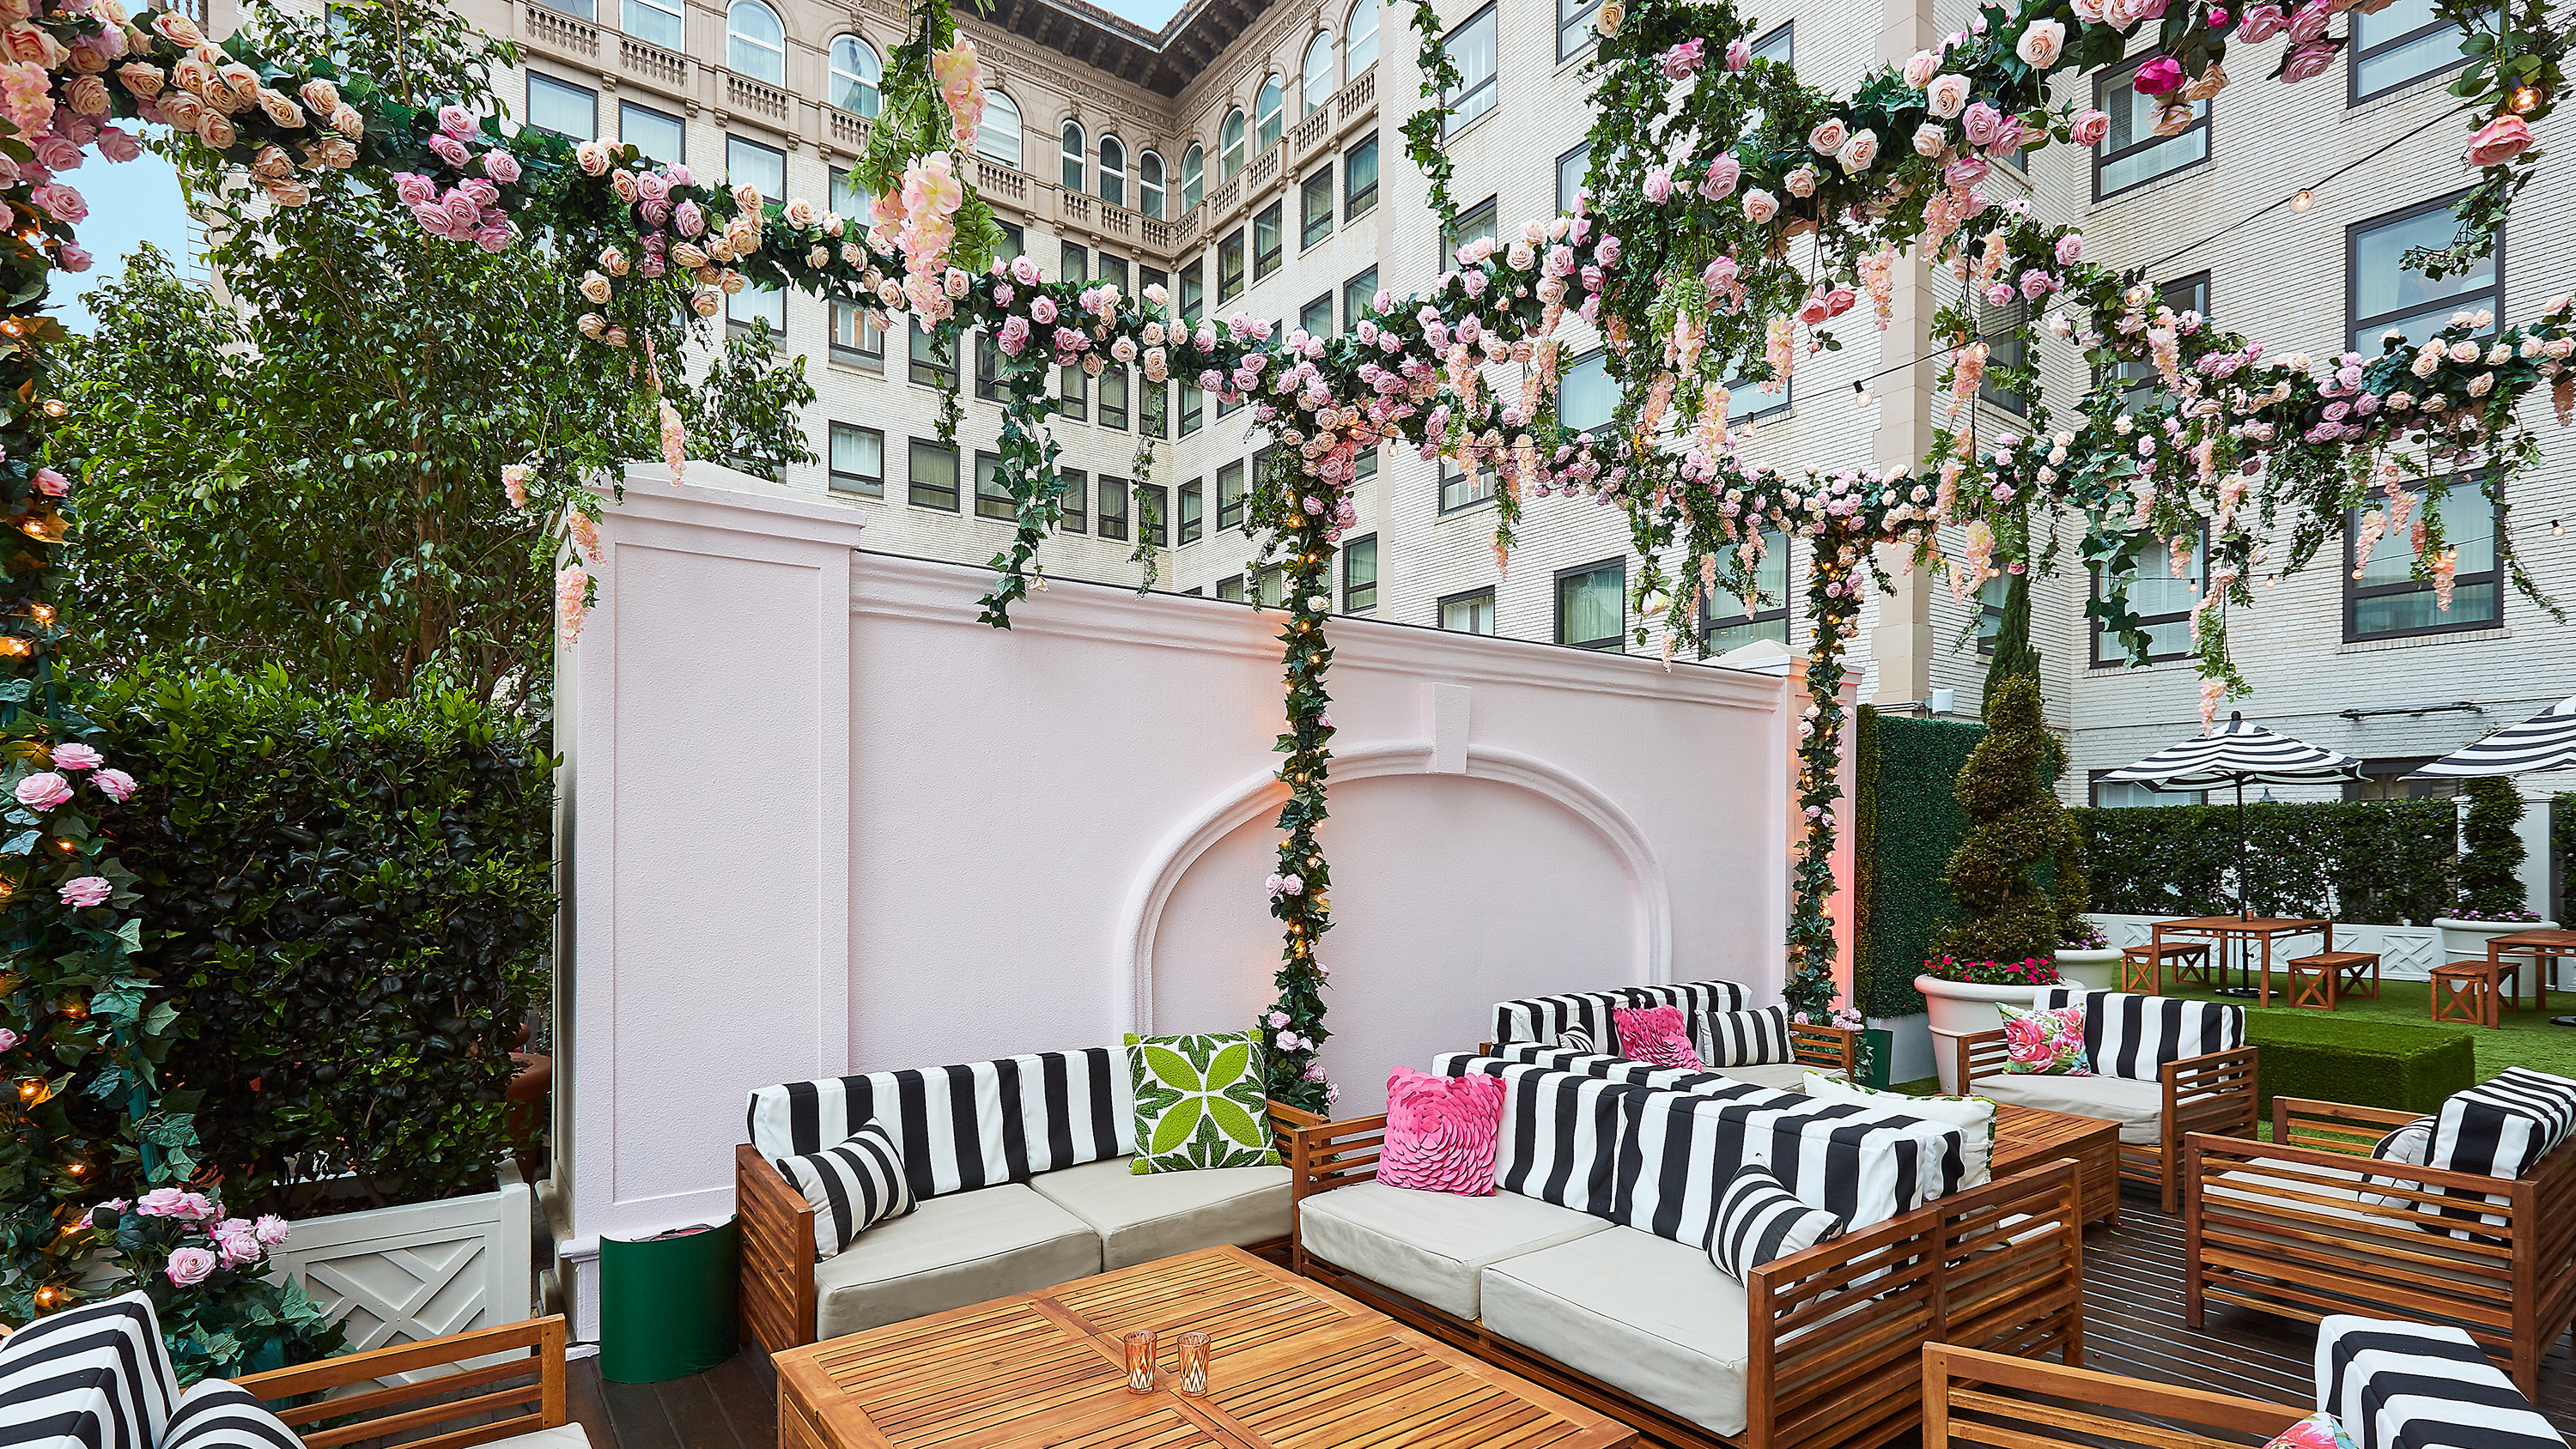 The Secret Rosé Garden rooftop pop-up at the Beverly Wilshire